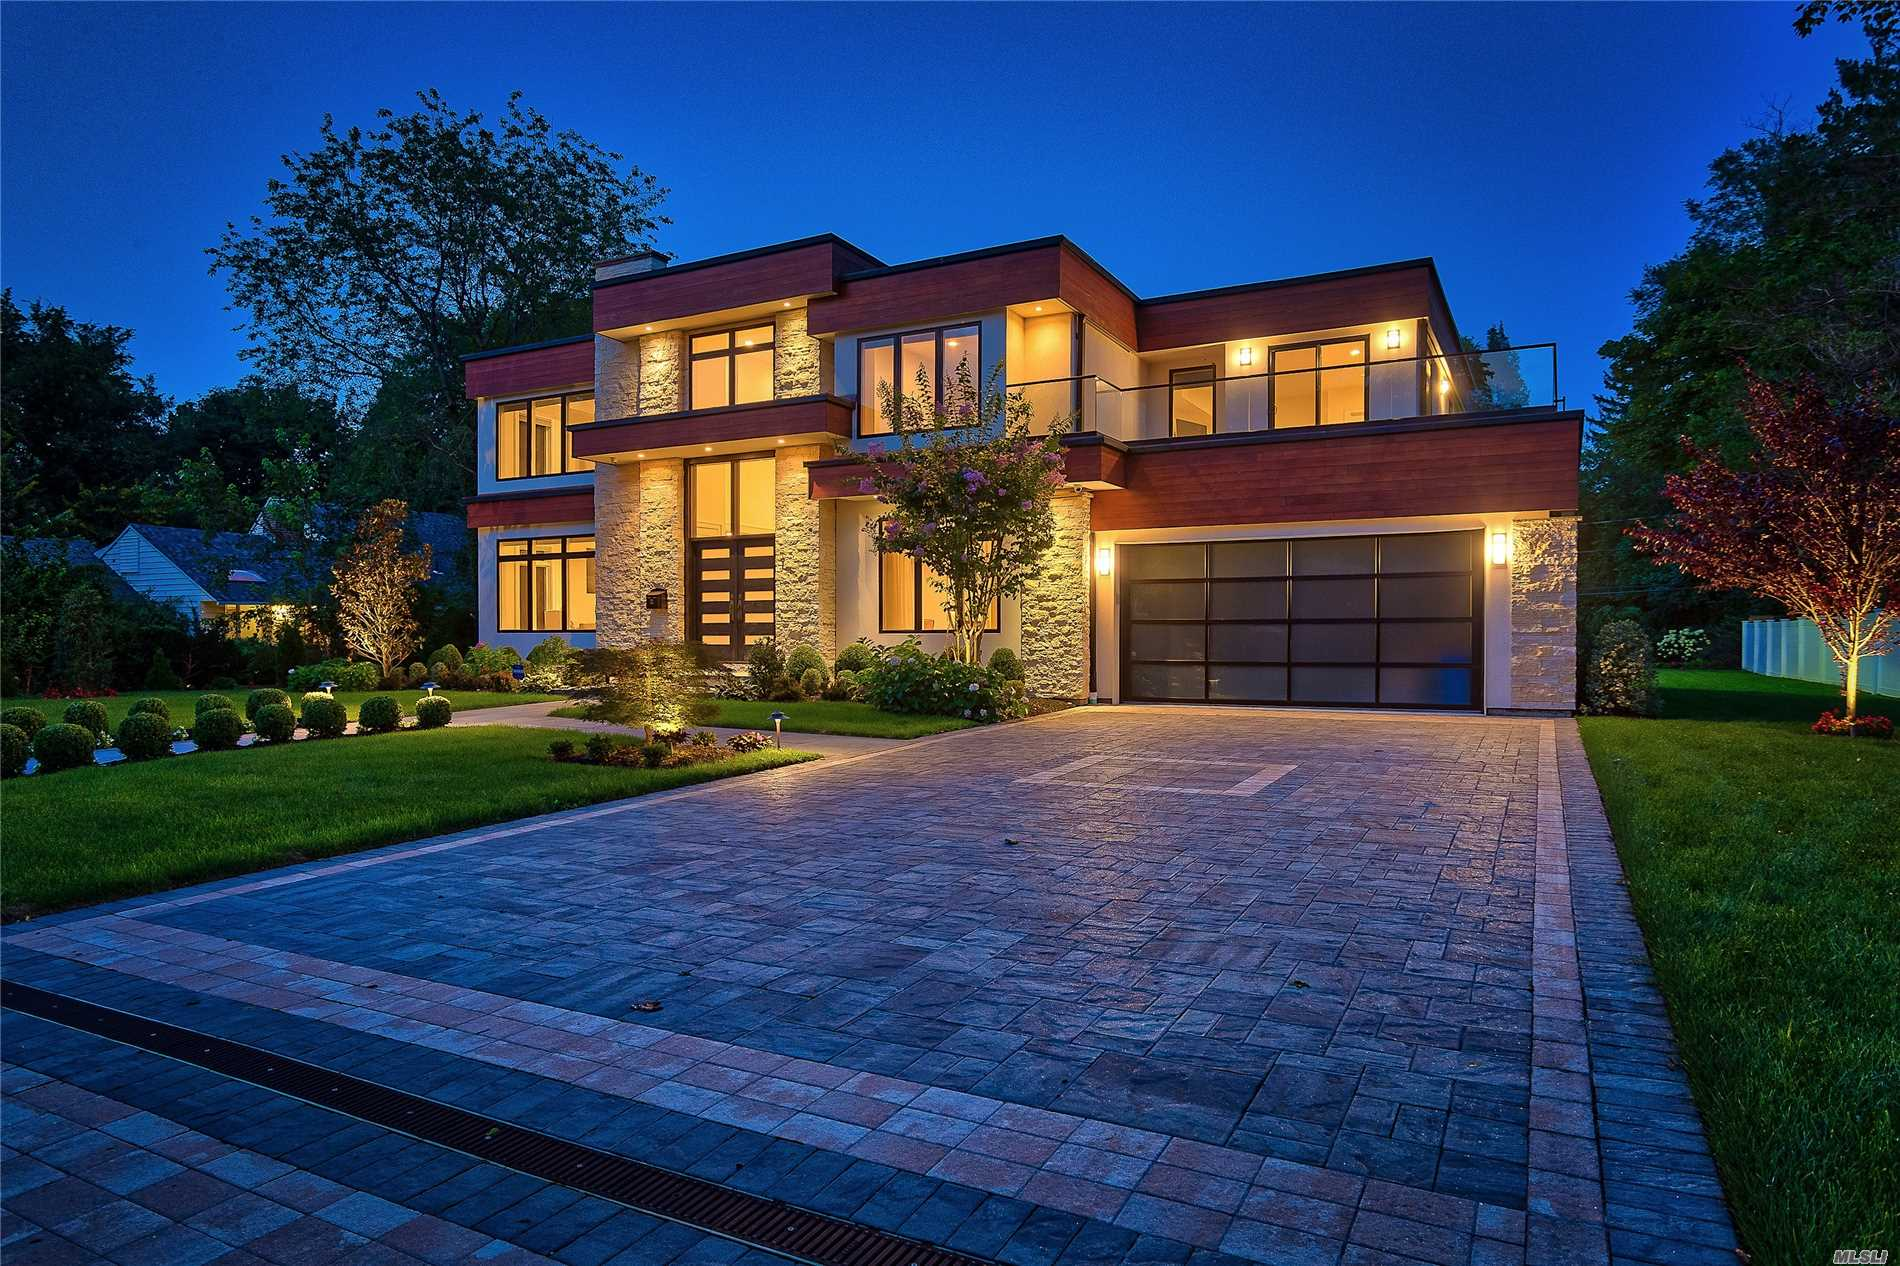 Roslyn Heights. Incredible Contemporary In Roslyn Heights. Peerless Stone & Wood Built, 5-Bedroom, 5.5-Bath Home Sitting On A Third Acre Property. Featuring The Finest In Materials, Remarkable Flow Throughout With Open Layout, Glass & Wood Staircases Leading Upstairs & Downstairs, Radiant Heated Floors, Fabulous Eat In Kitchen With Quarts Counter Tops & Sliding Doors To Back Patio, Finished Basement With Laundry, Theater, Large Recreation Room, Gym, Ose, & Much More!